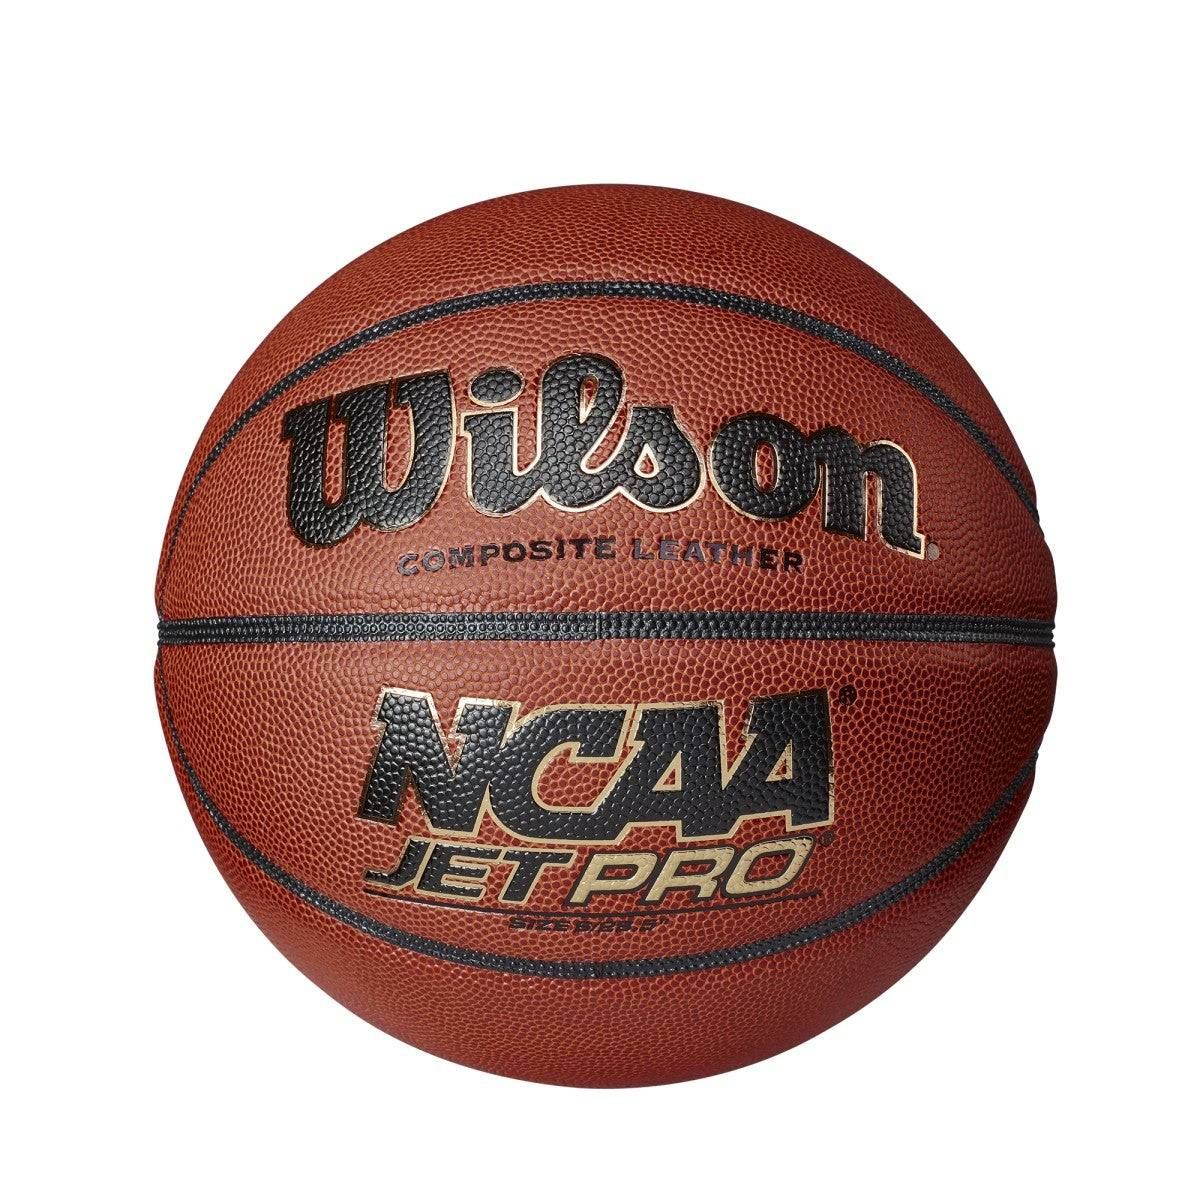 """Wilson NCAA Jet Pro Basketball in Brown - Size: Youth - 27.5""""  - Unisex - Brown - Size: Youth - 27.5"""""""